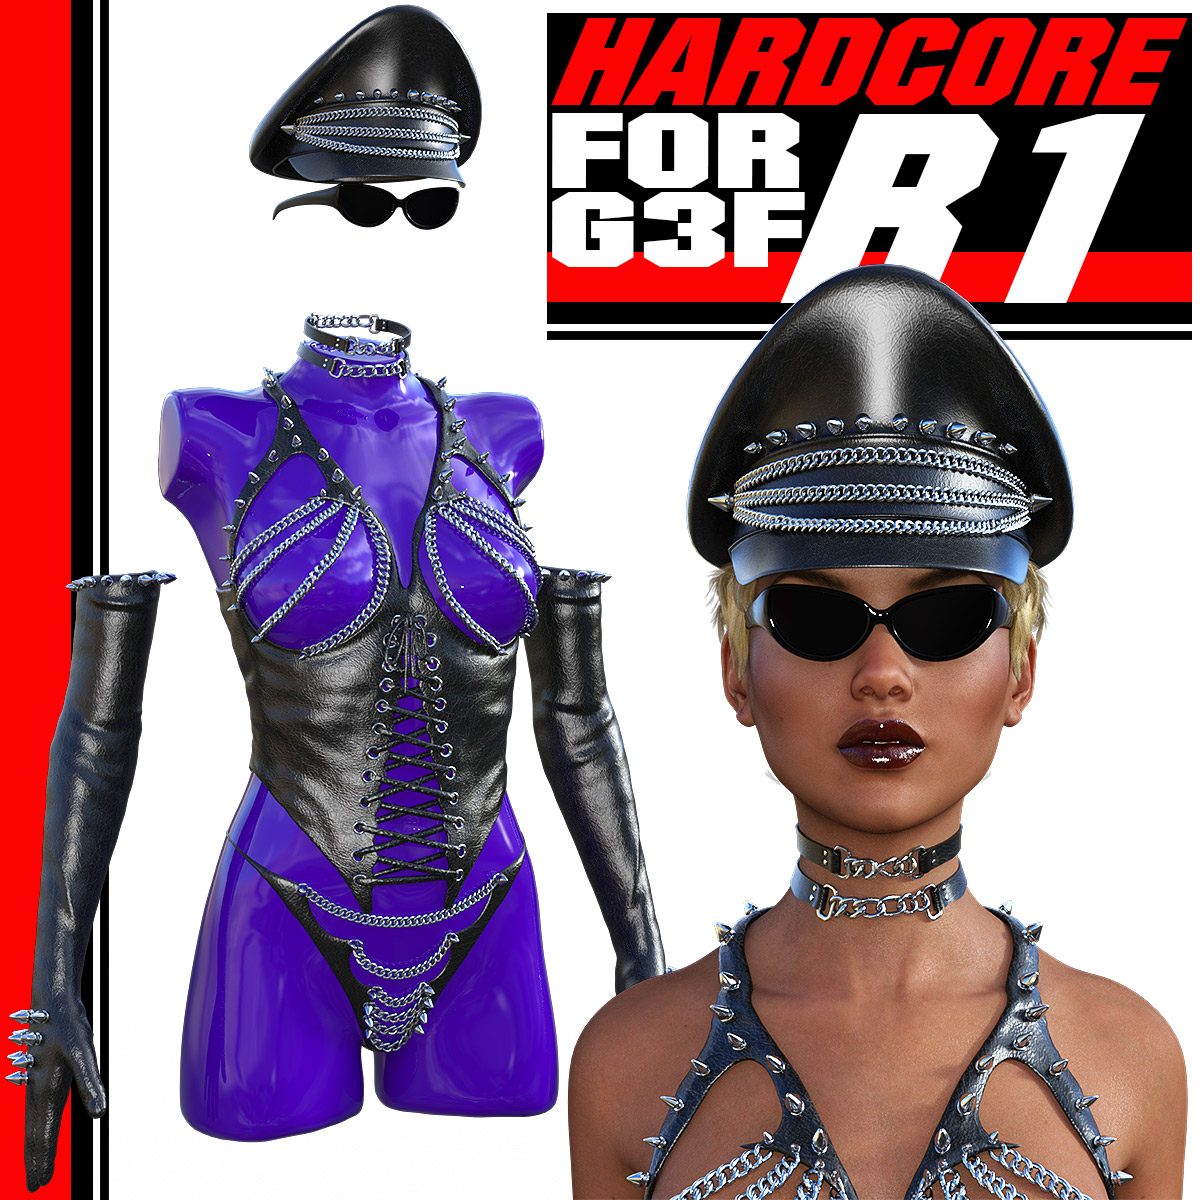 HARDCORE-R1 for G3 females